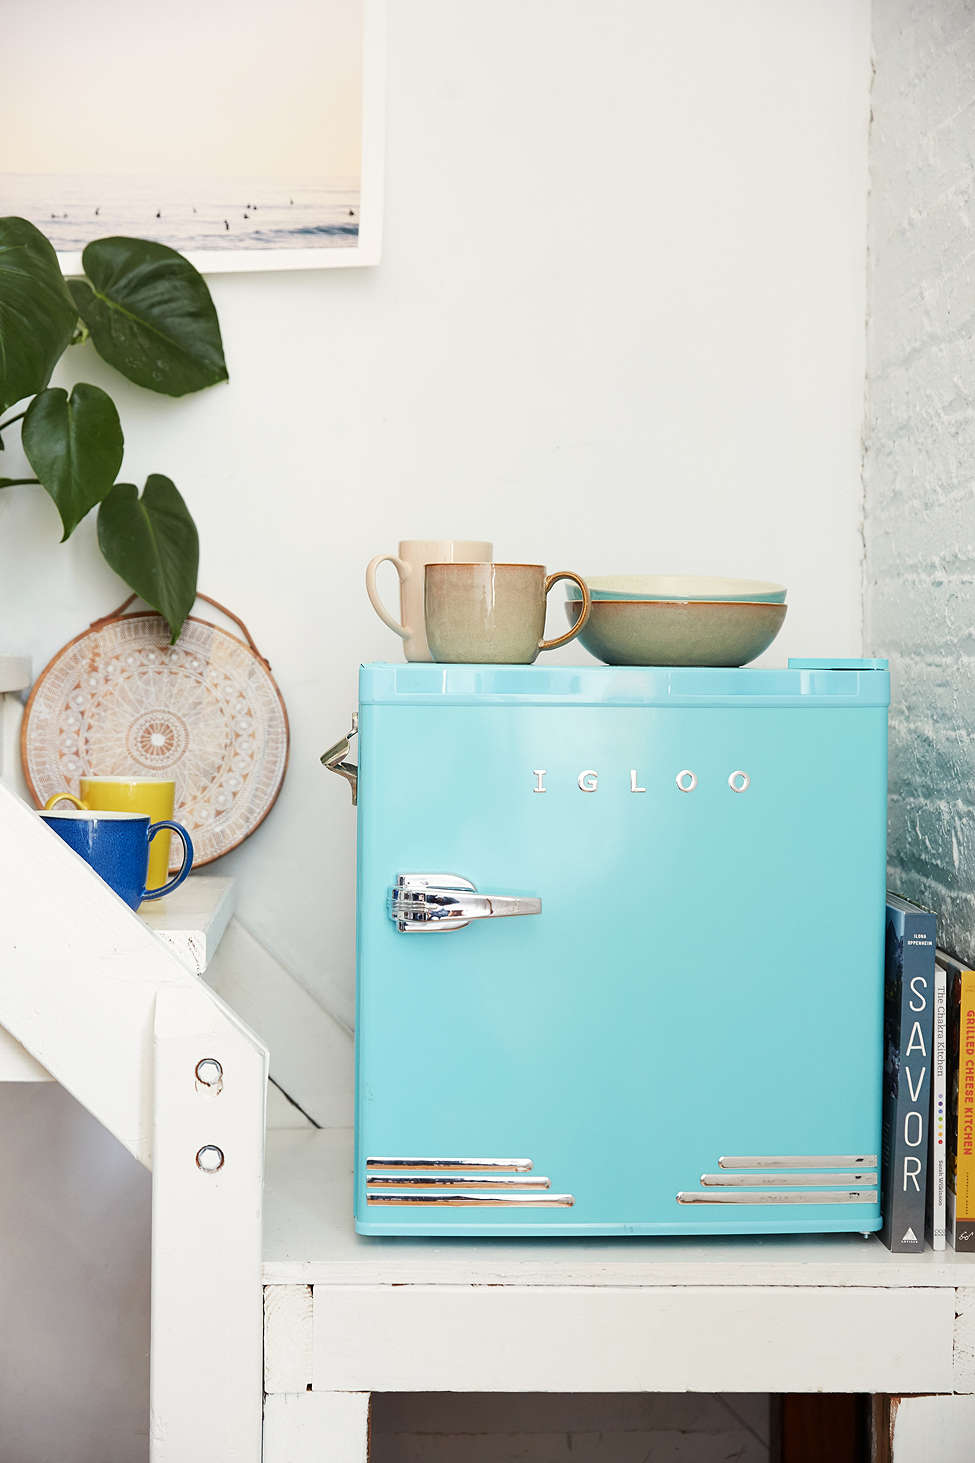 Mini fridge from Urban Outfitters